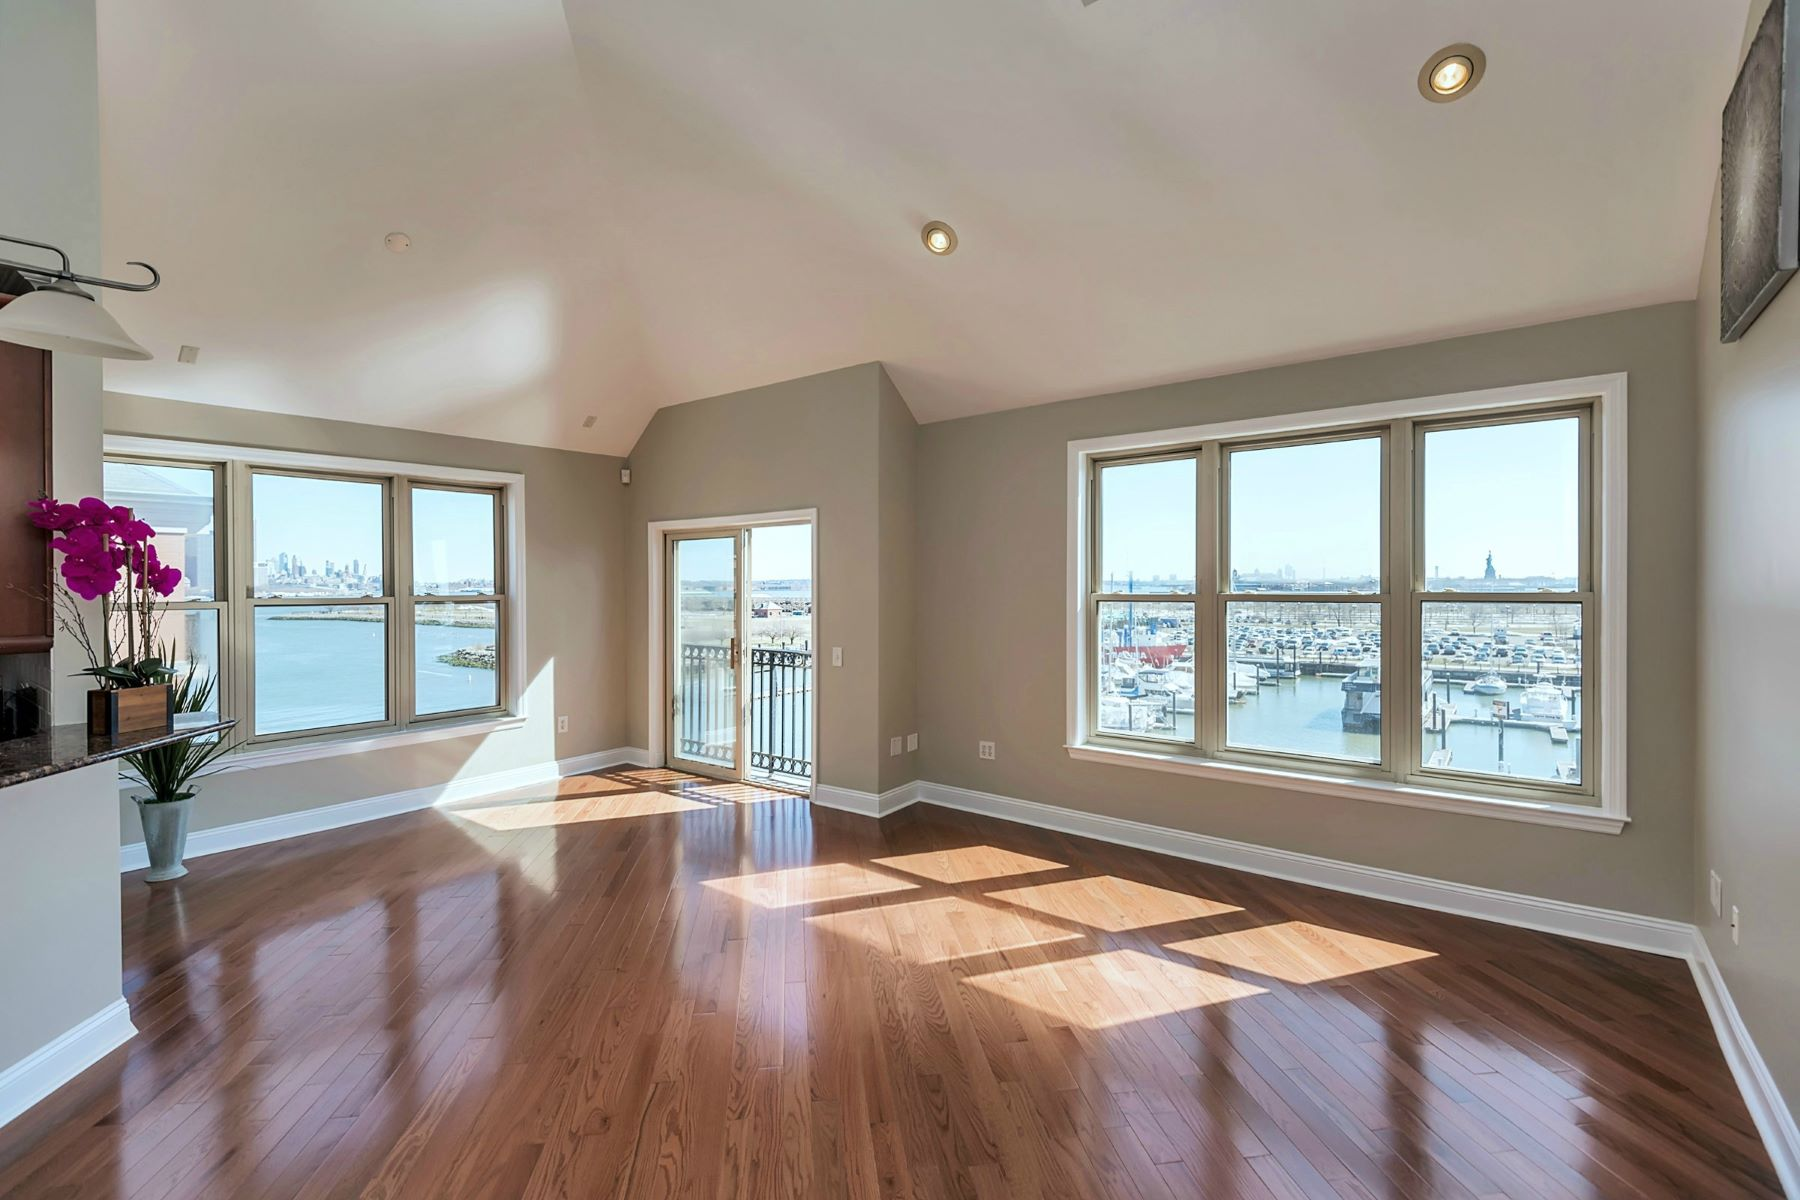 复式单位 为 销售 在 Sun-drenched, South-East facing duplex 15 Warren St #417 #417 泽西城, 07302 美国